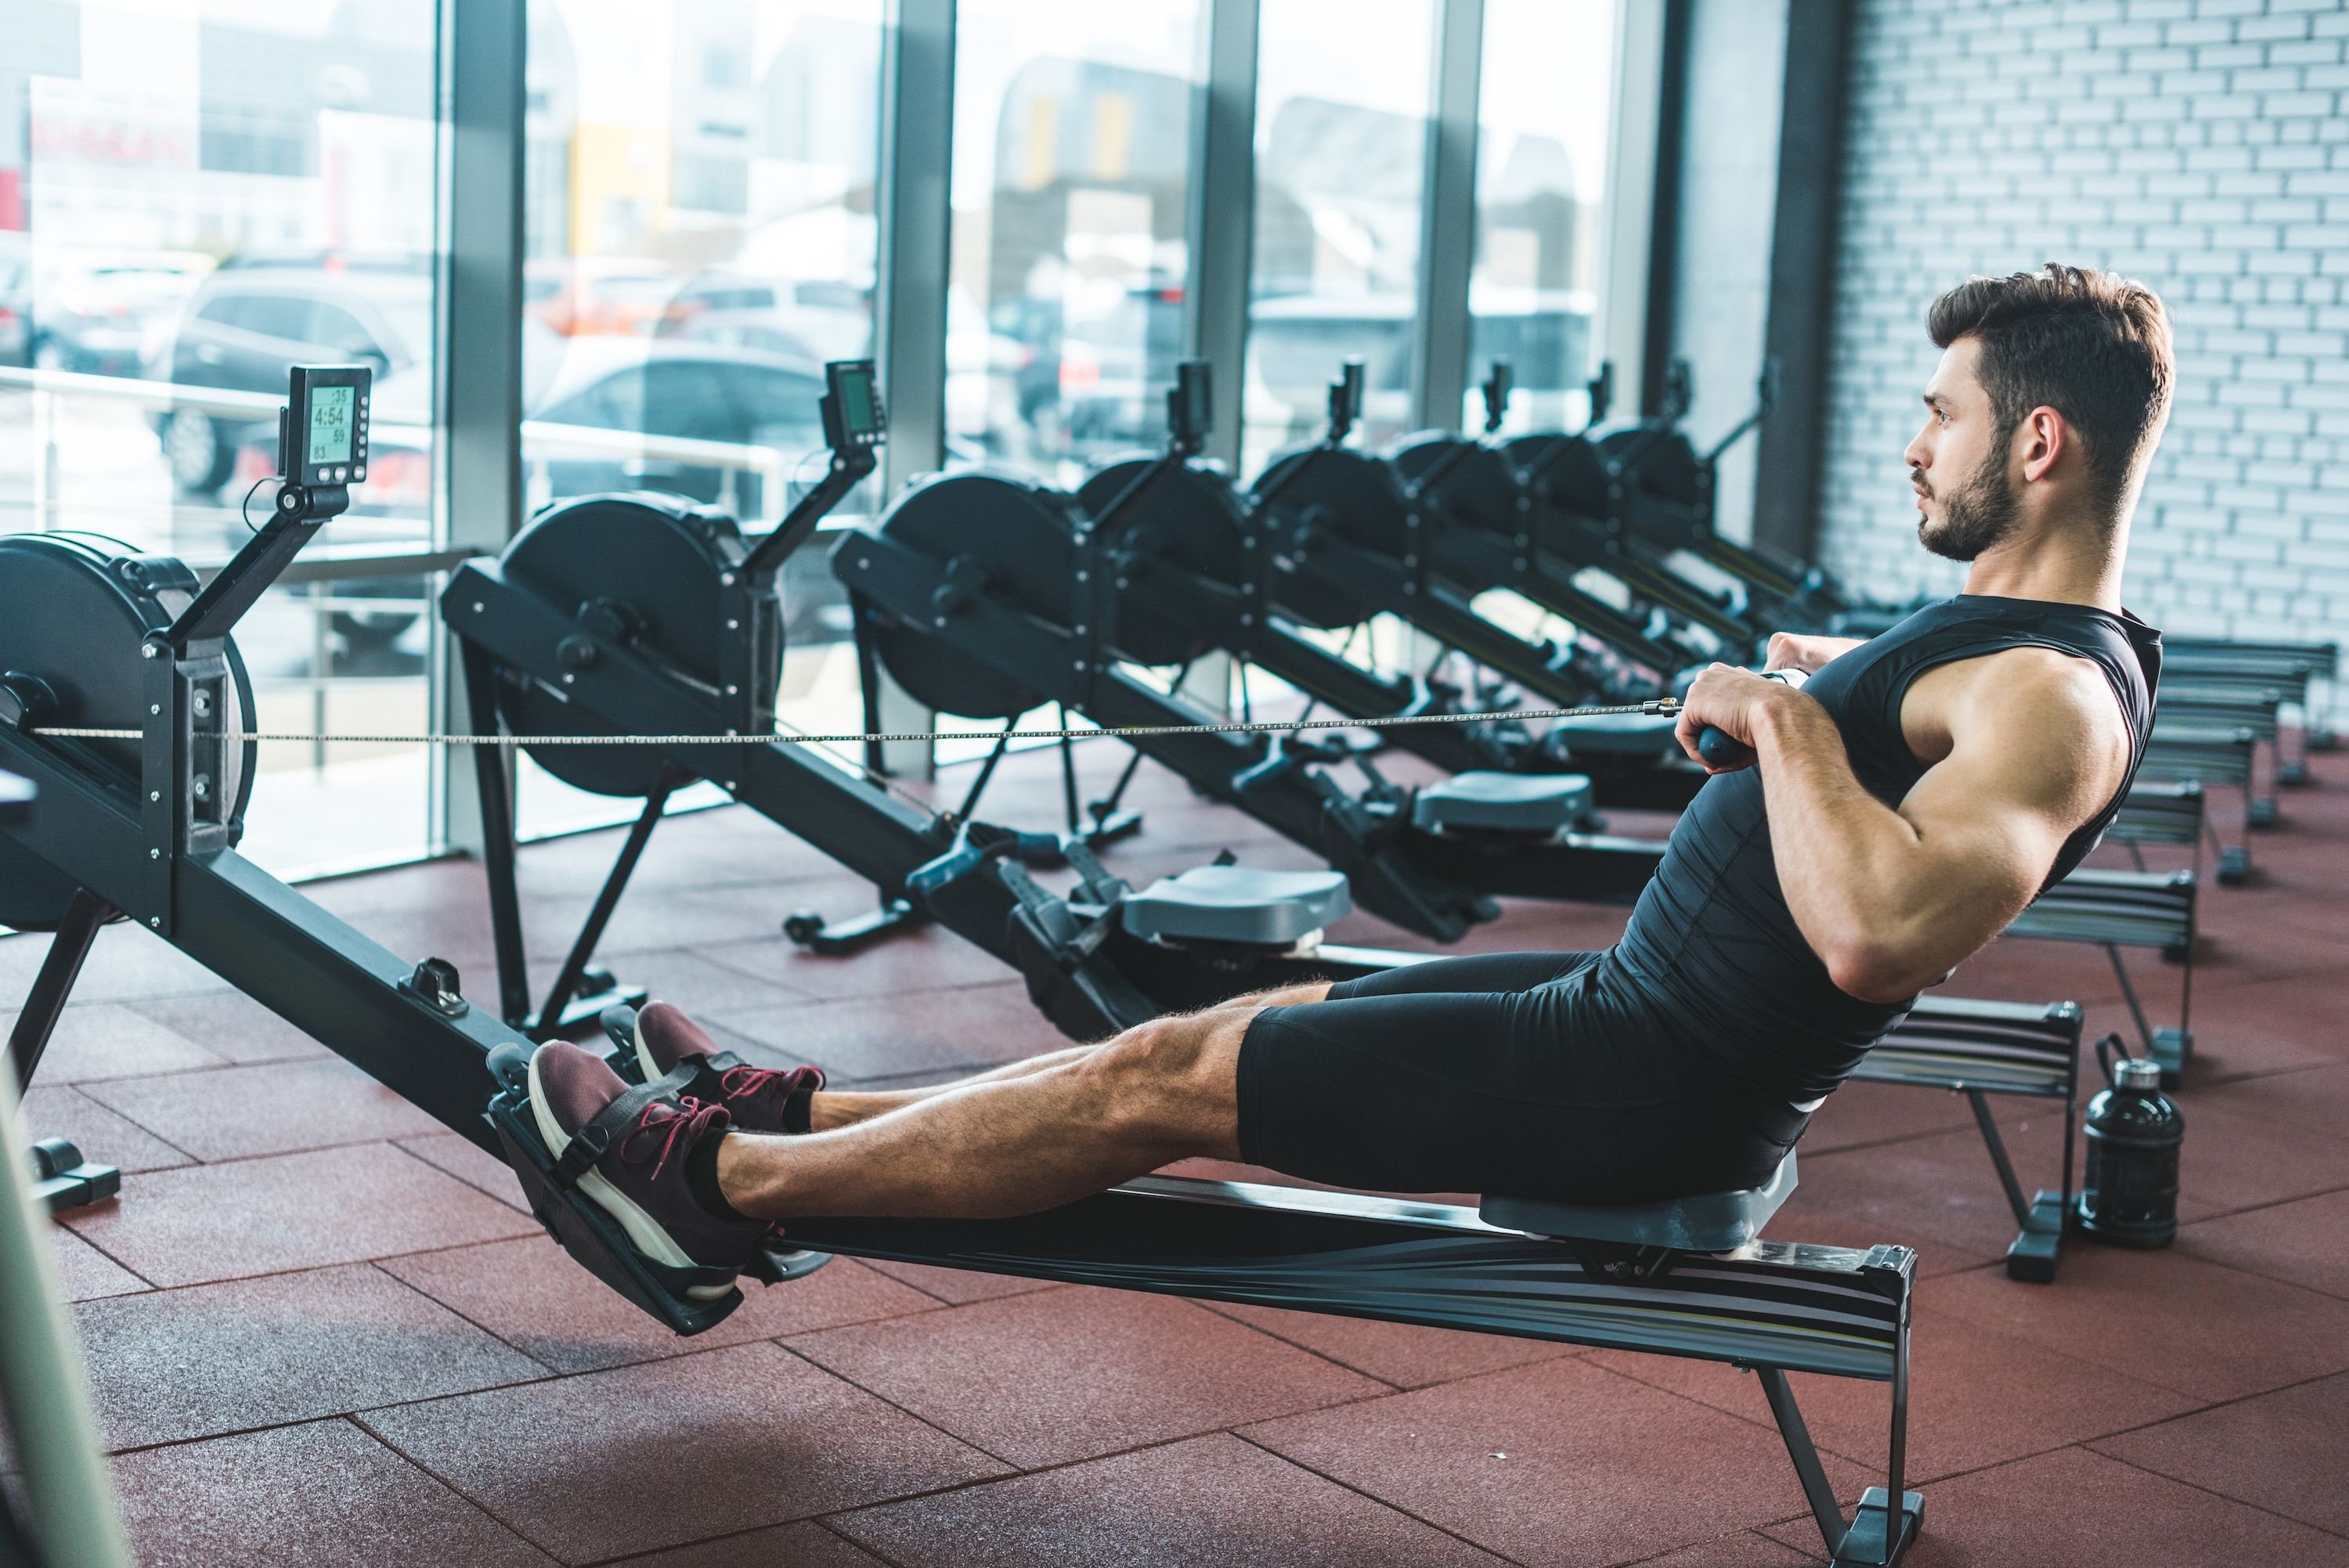 How to Use a Rowing Machine as a Killer Cross-Training Tool